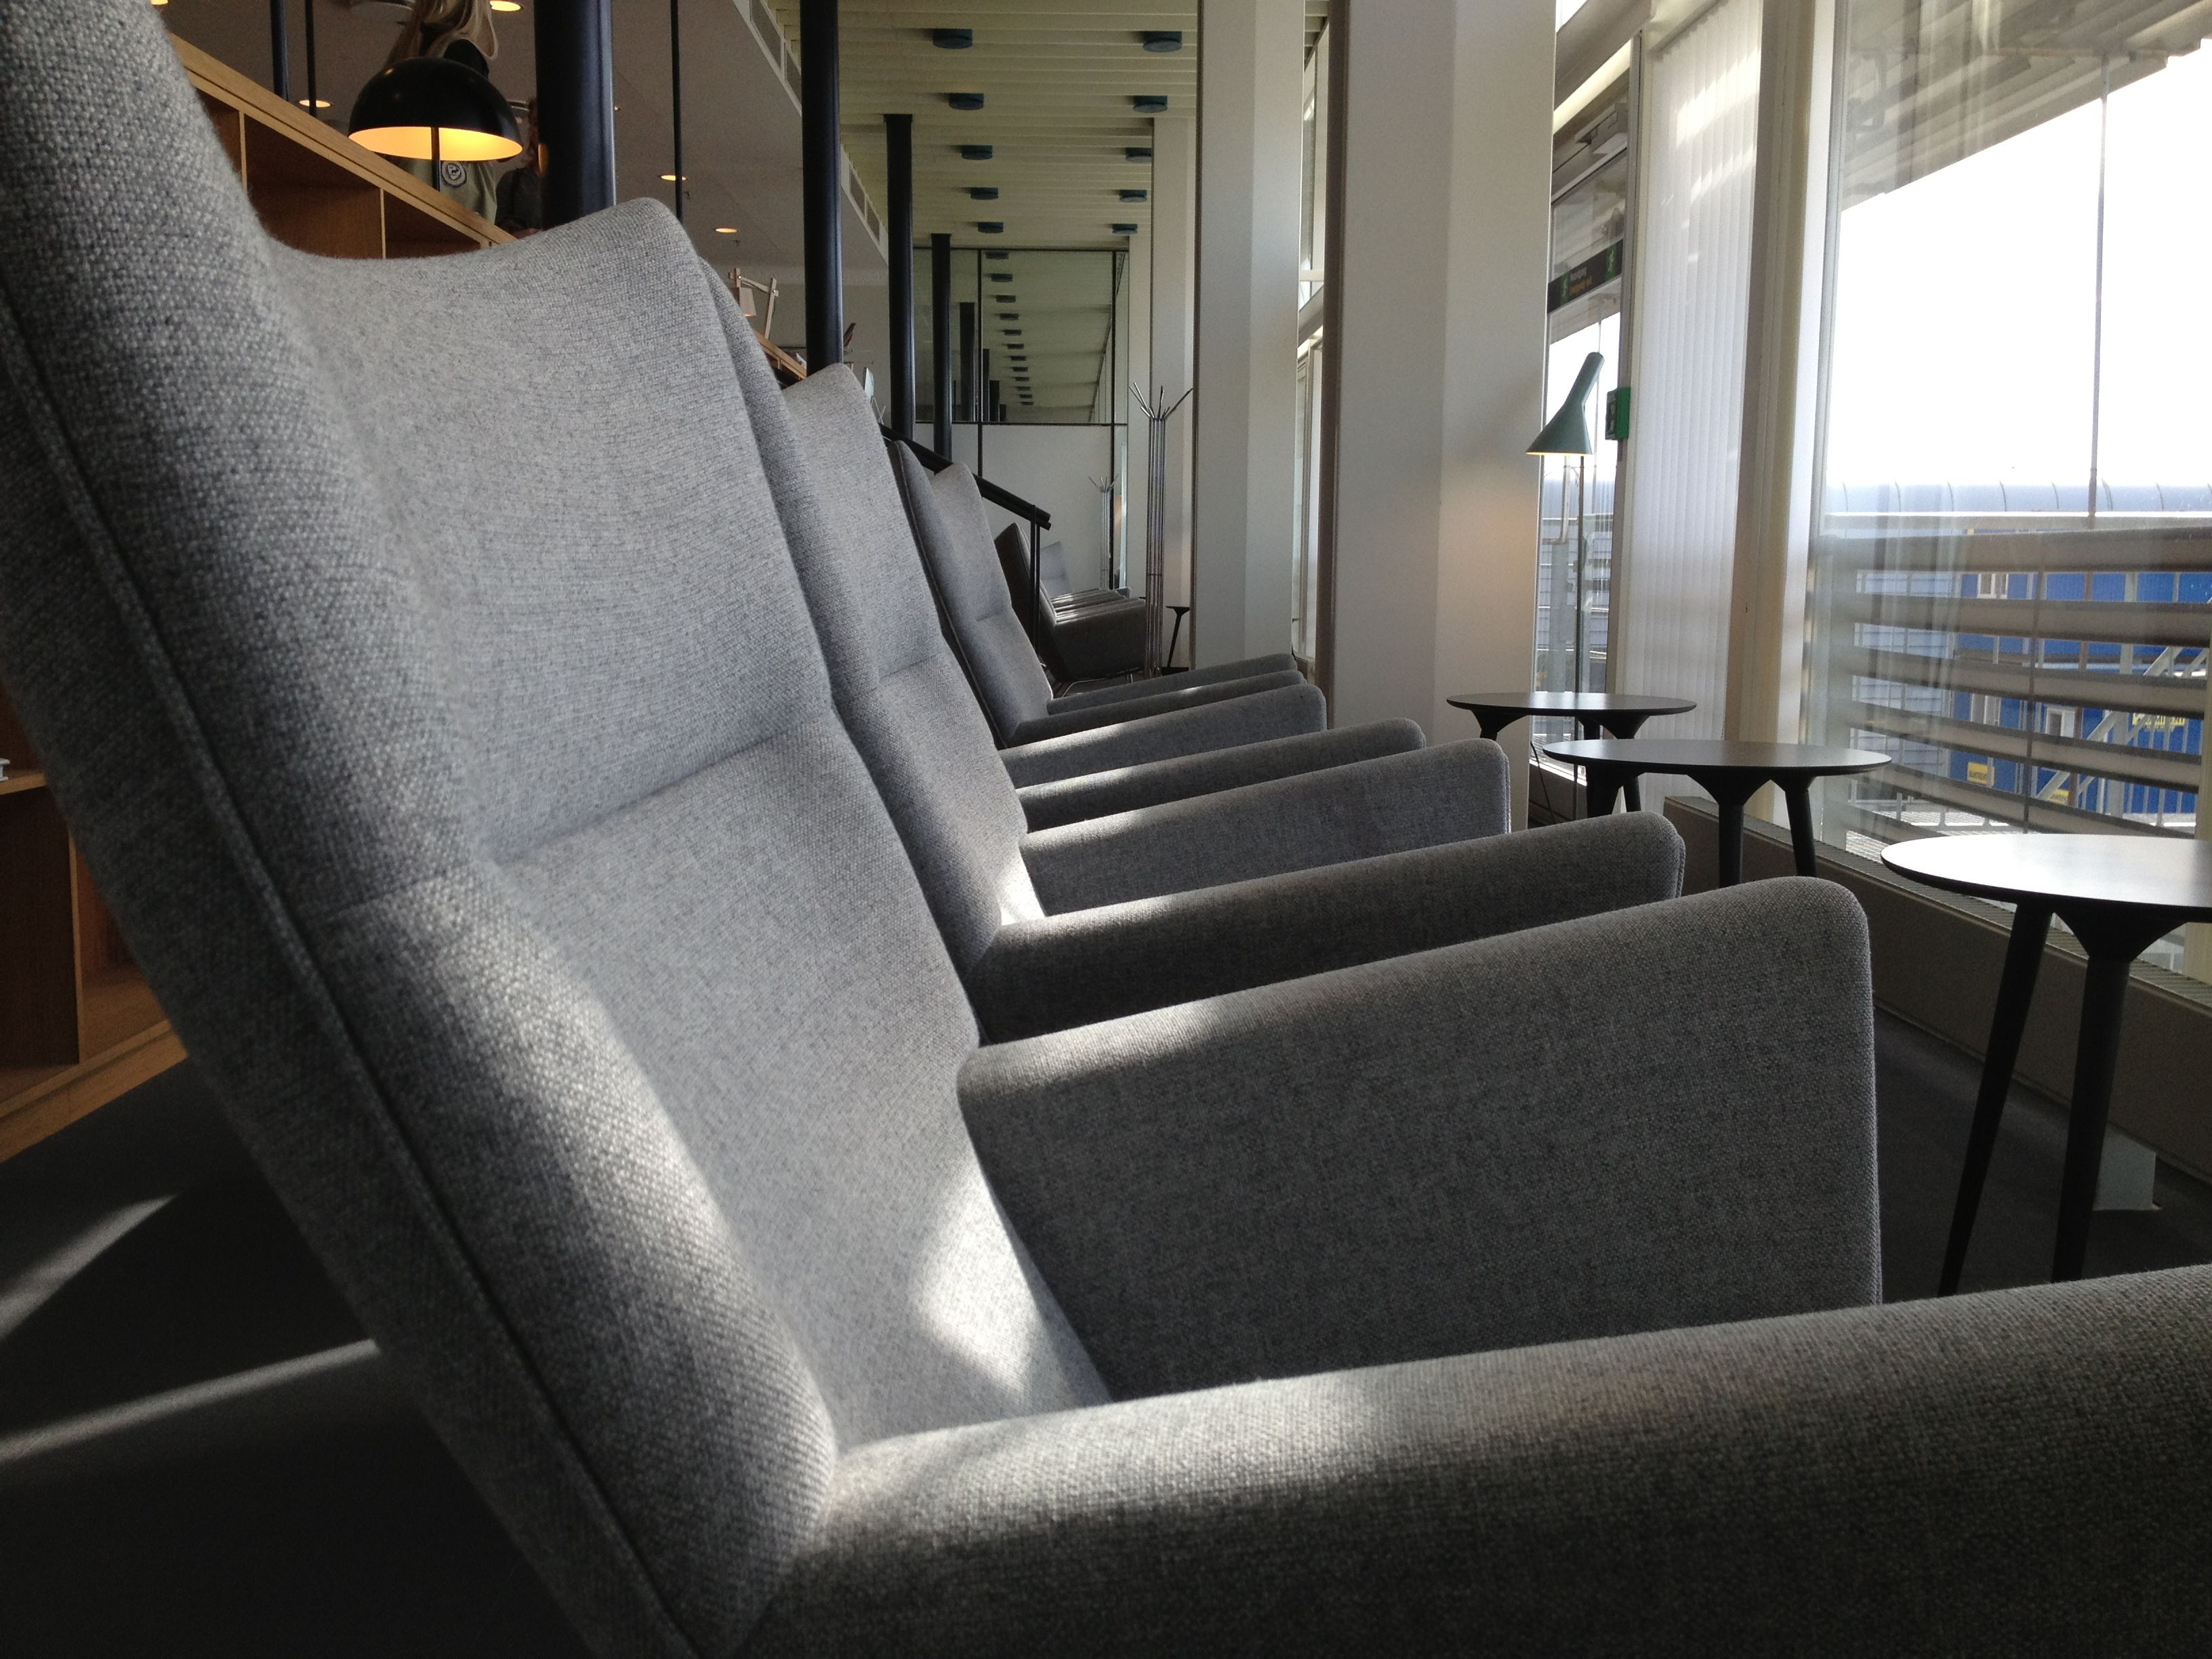 Cph Apartment Lounge In Copenhagen Airport Relax Have A Cup Of